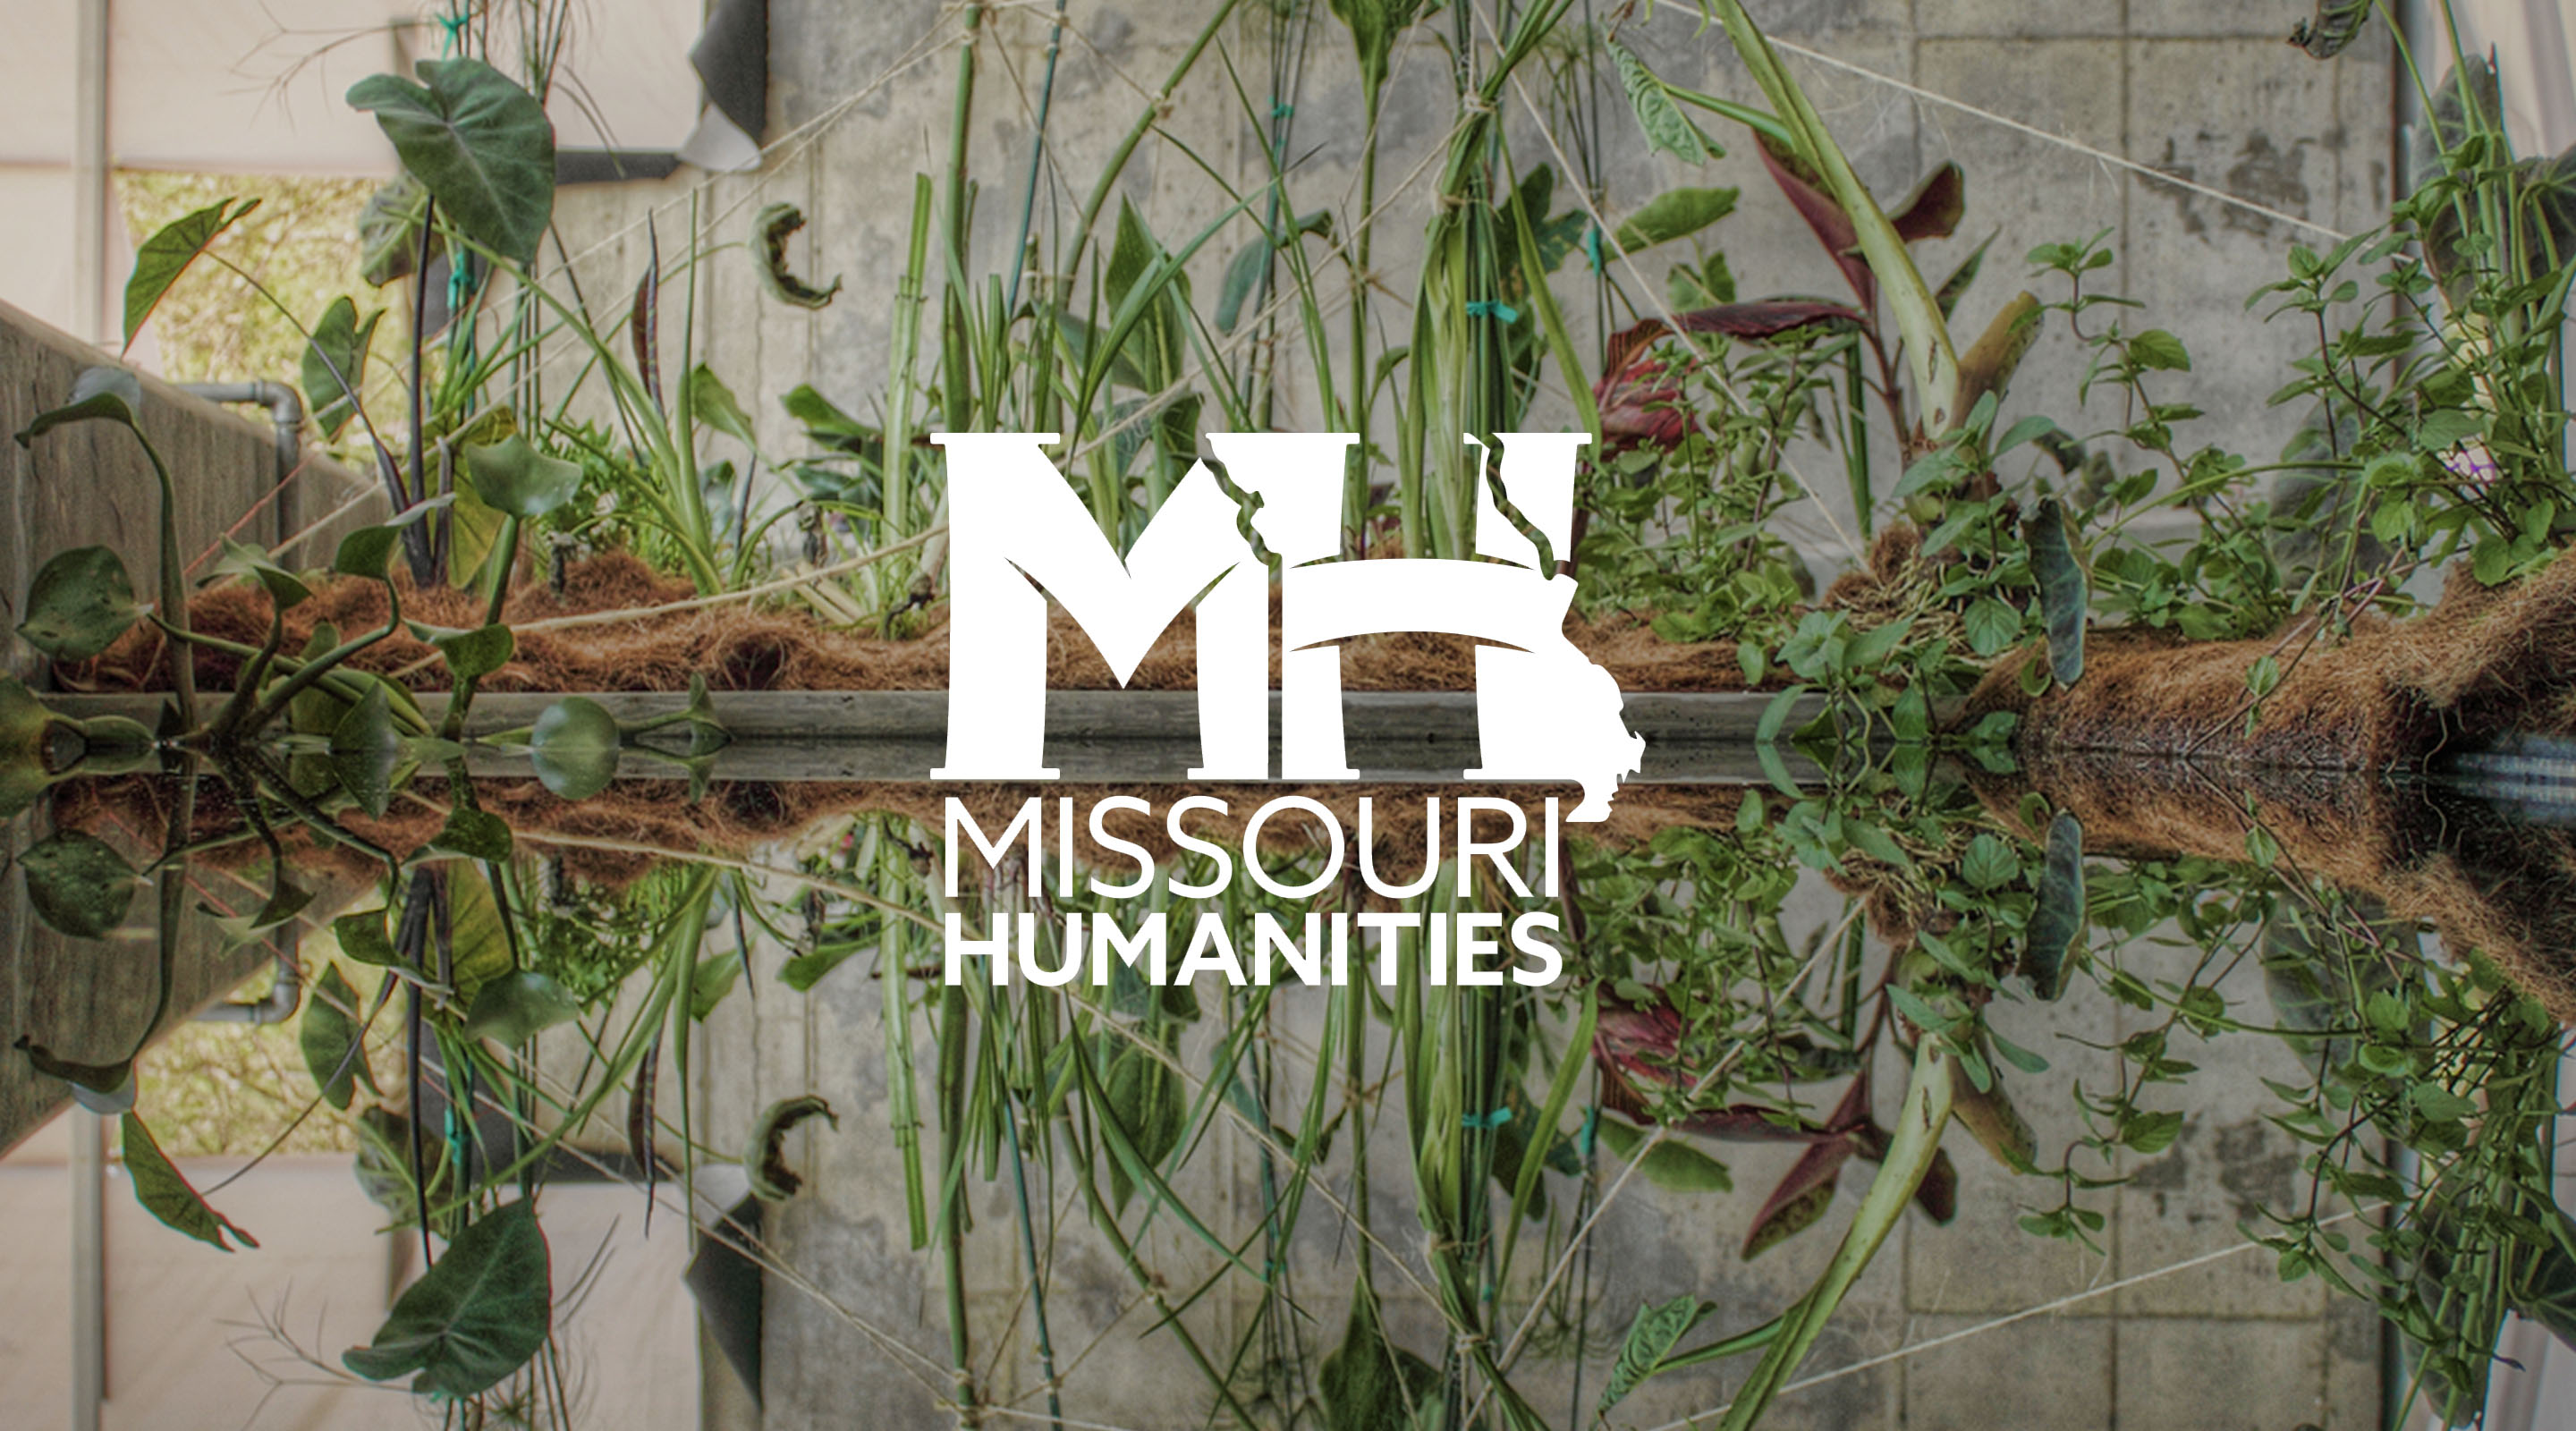 Laura Lesniewski participates in the Missouri Humanities Symposium: Water